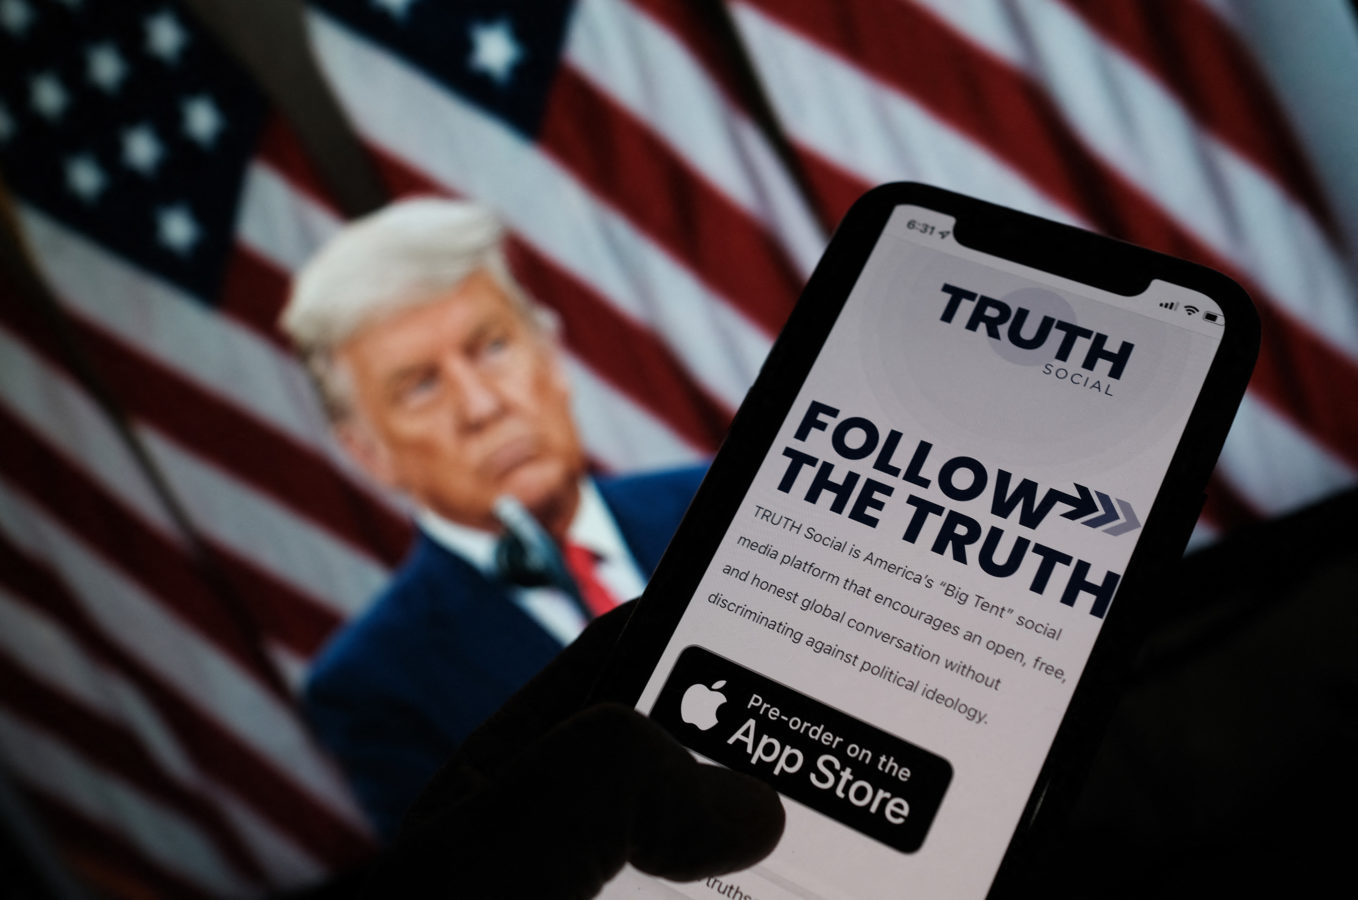 Trump announces plans to launch new social network called 'TRUTH Social'